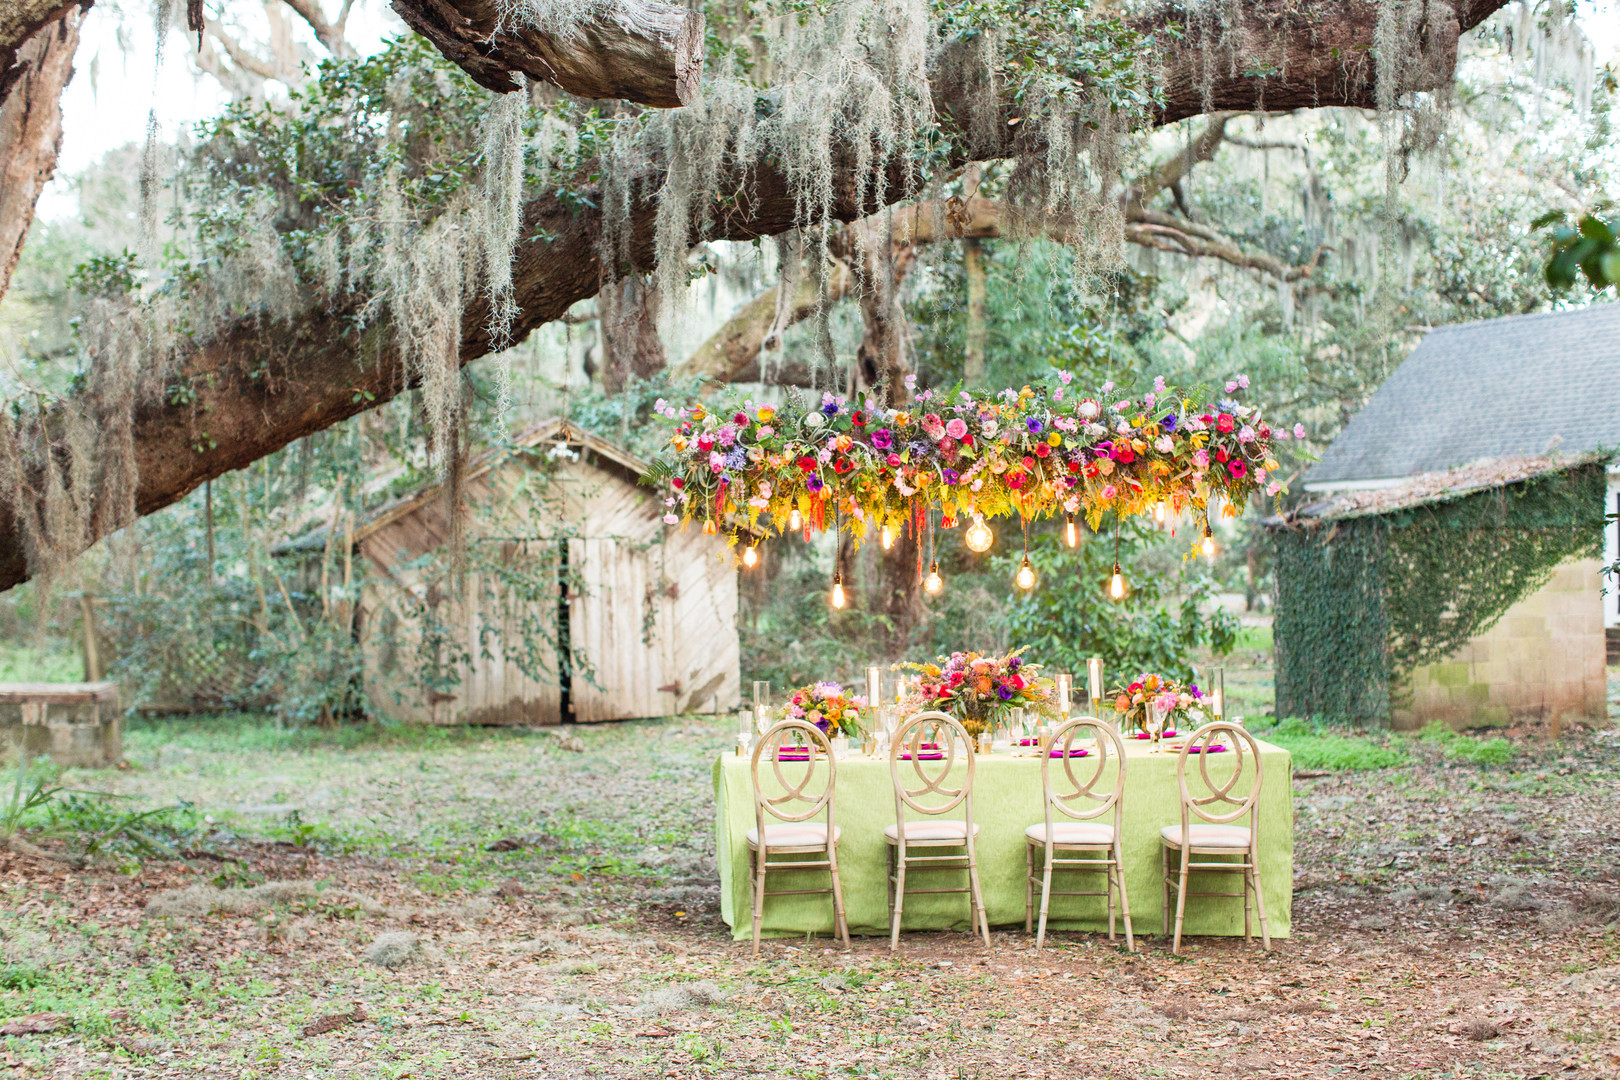 sunnyside-plantation-wedding-27.jpg